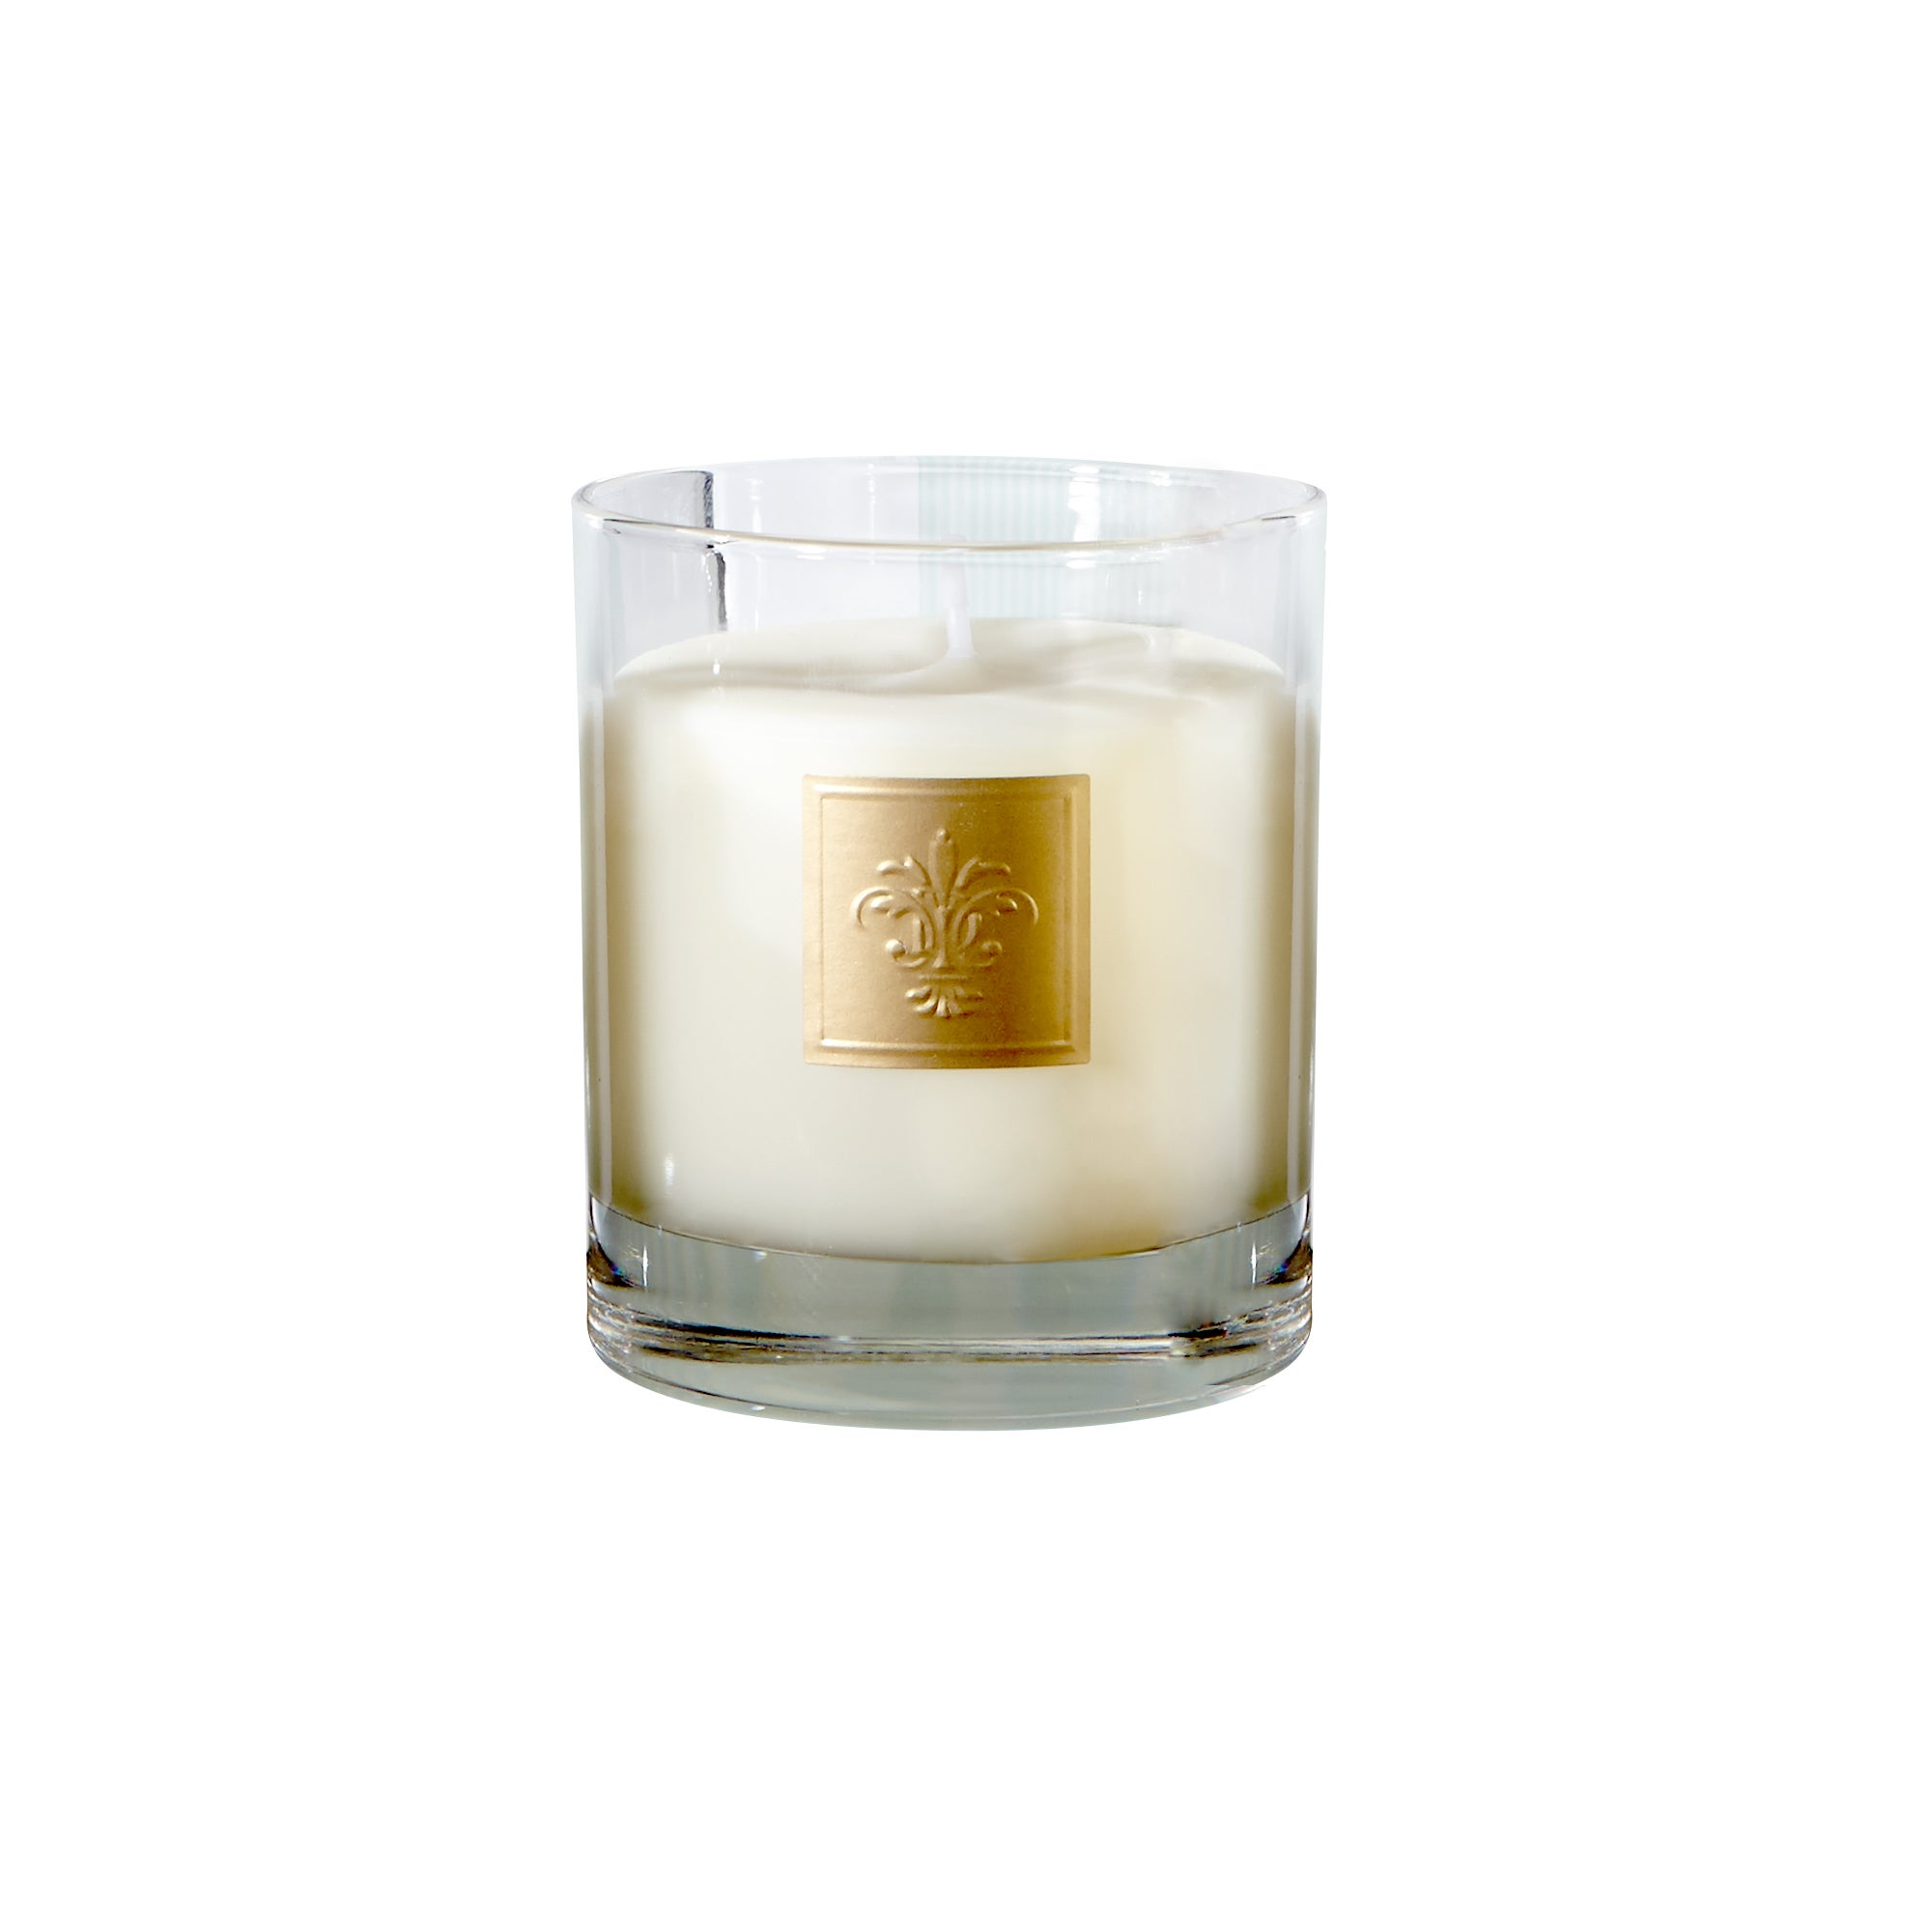 Dorma Small White Blossom and Musk Candle